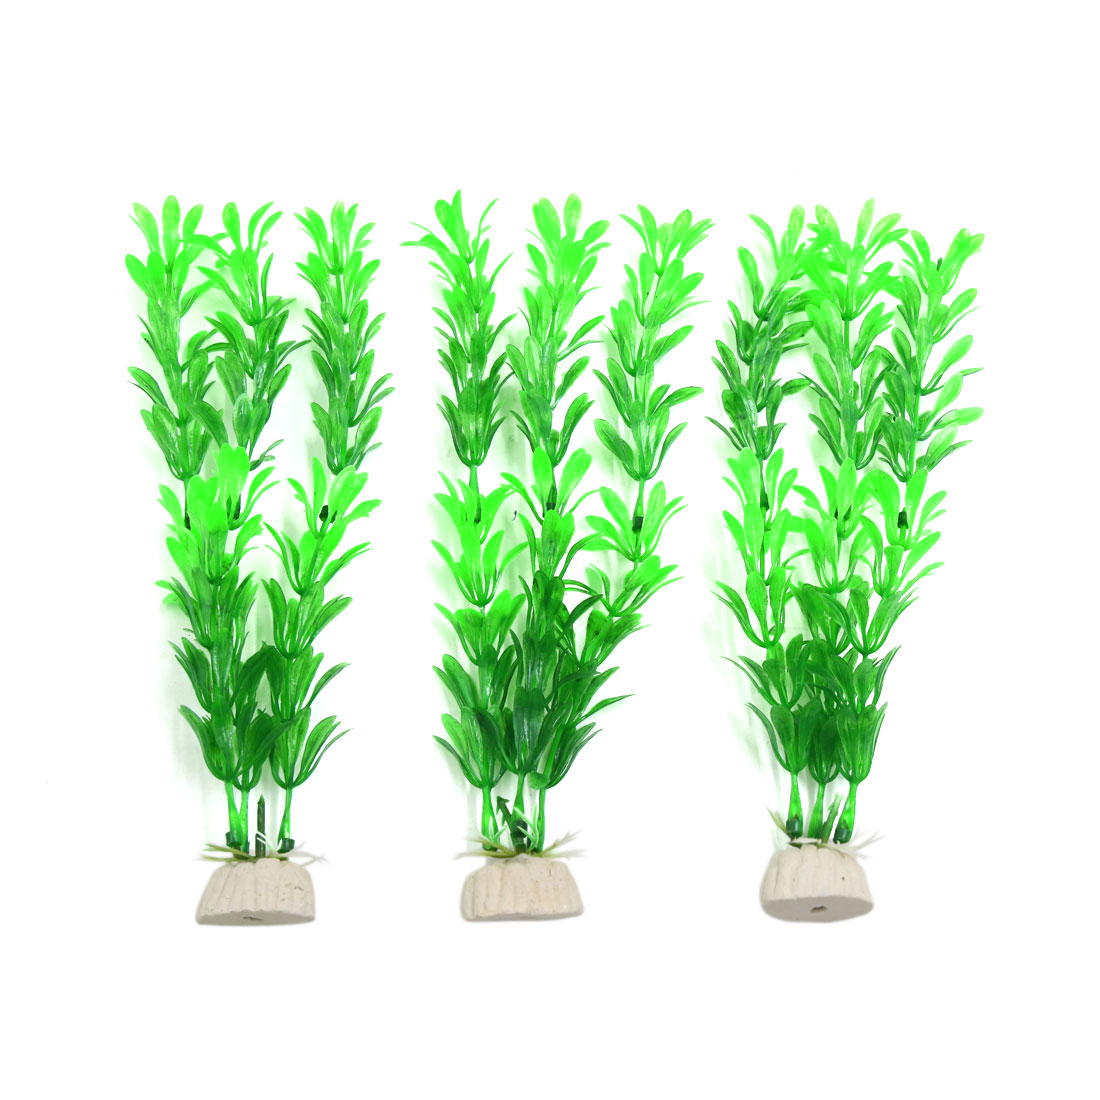 3pcs Green Plastic Aquarium Grass Plants Fish Tank Water Plant Decor Ornament